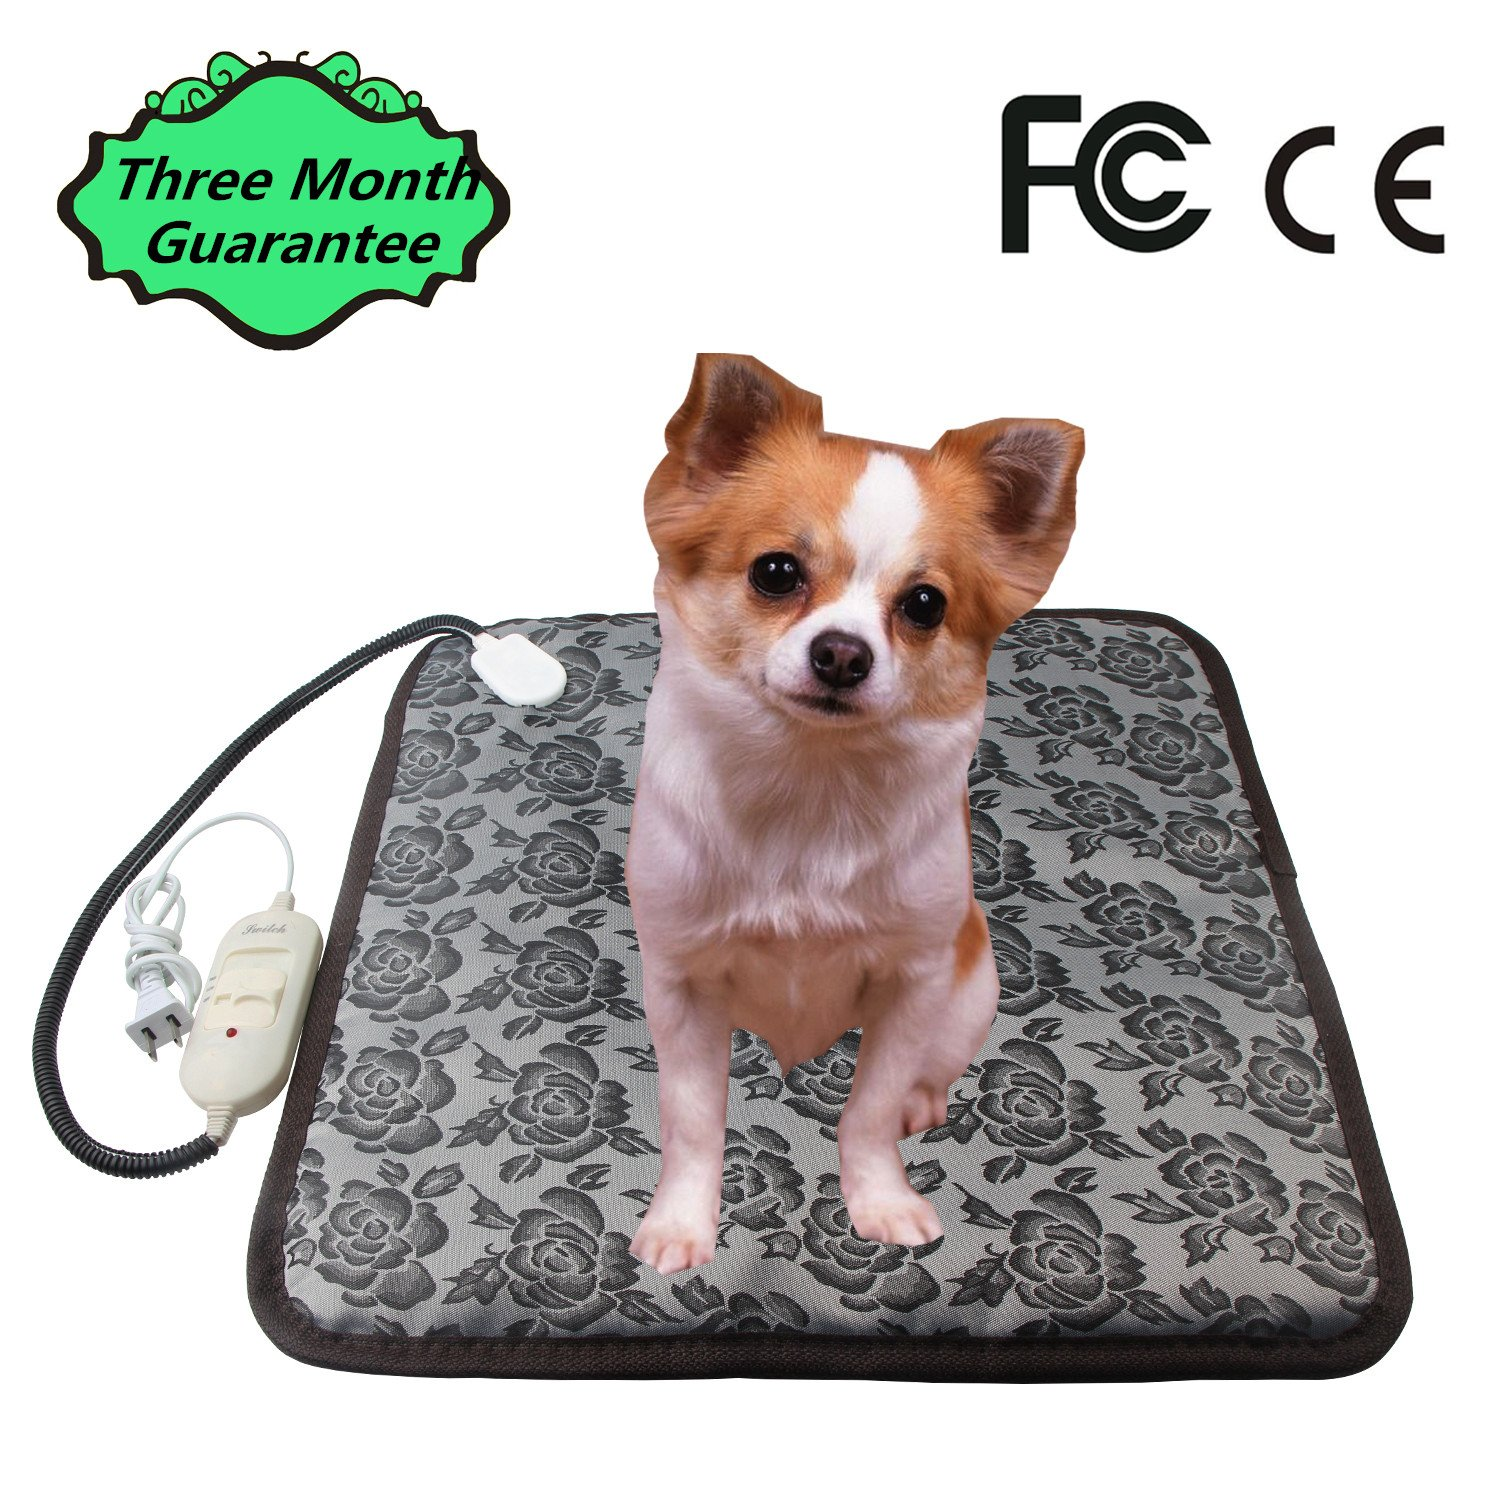 COVOART Waterproof Pet Heating Pad,Electric Adjustable Warming Dog Cat Heating Mat with Chew Resistant Steel Cord and Power-Off Protection 17.7''x17.7'' by COVOART (Image #1)